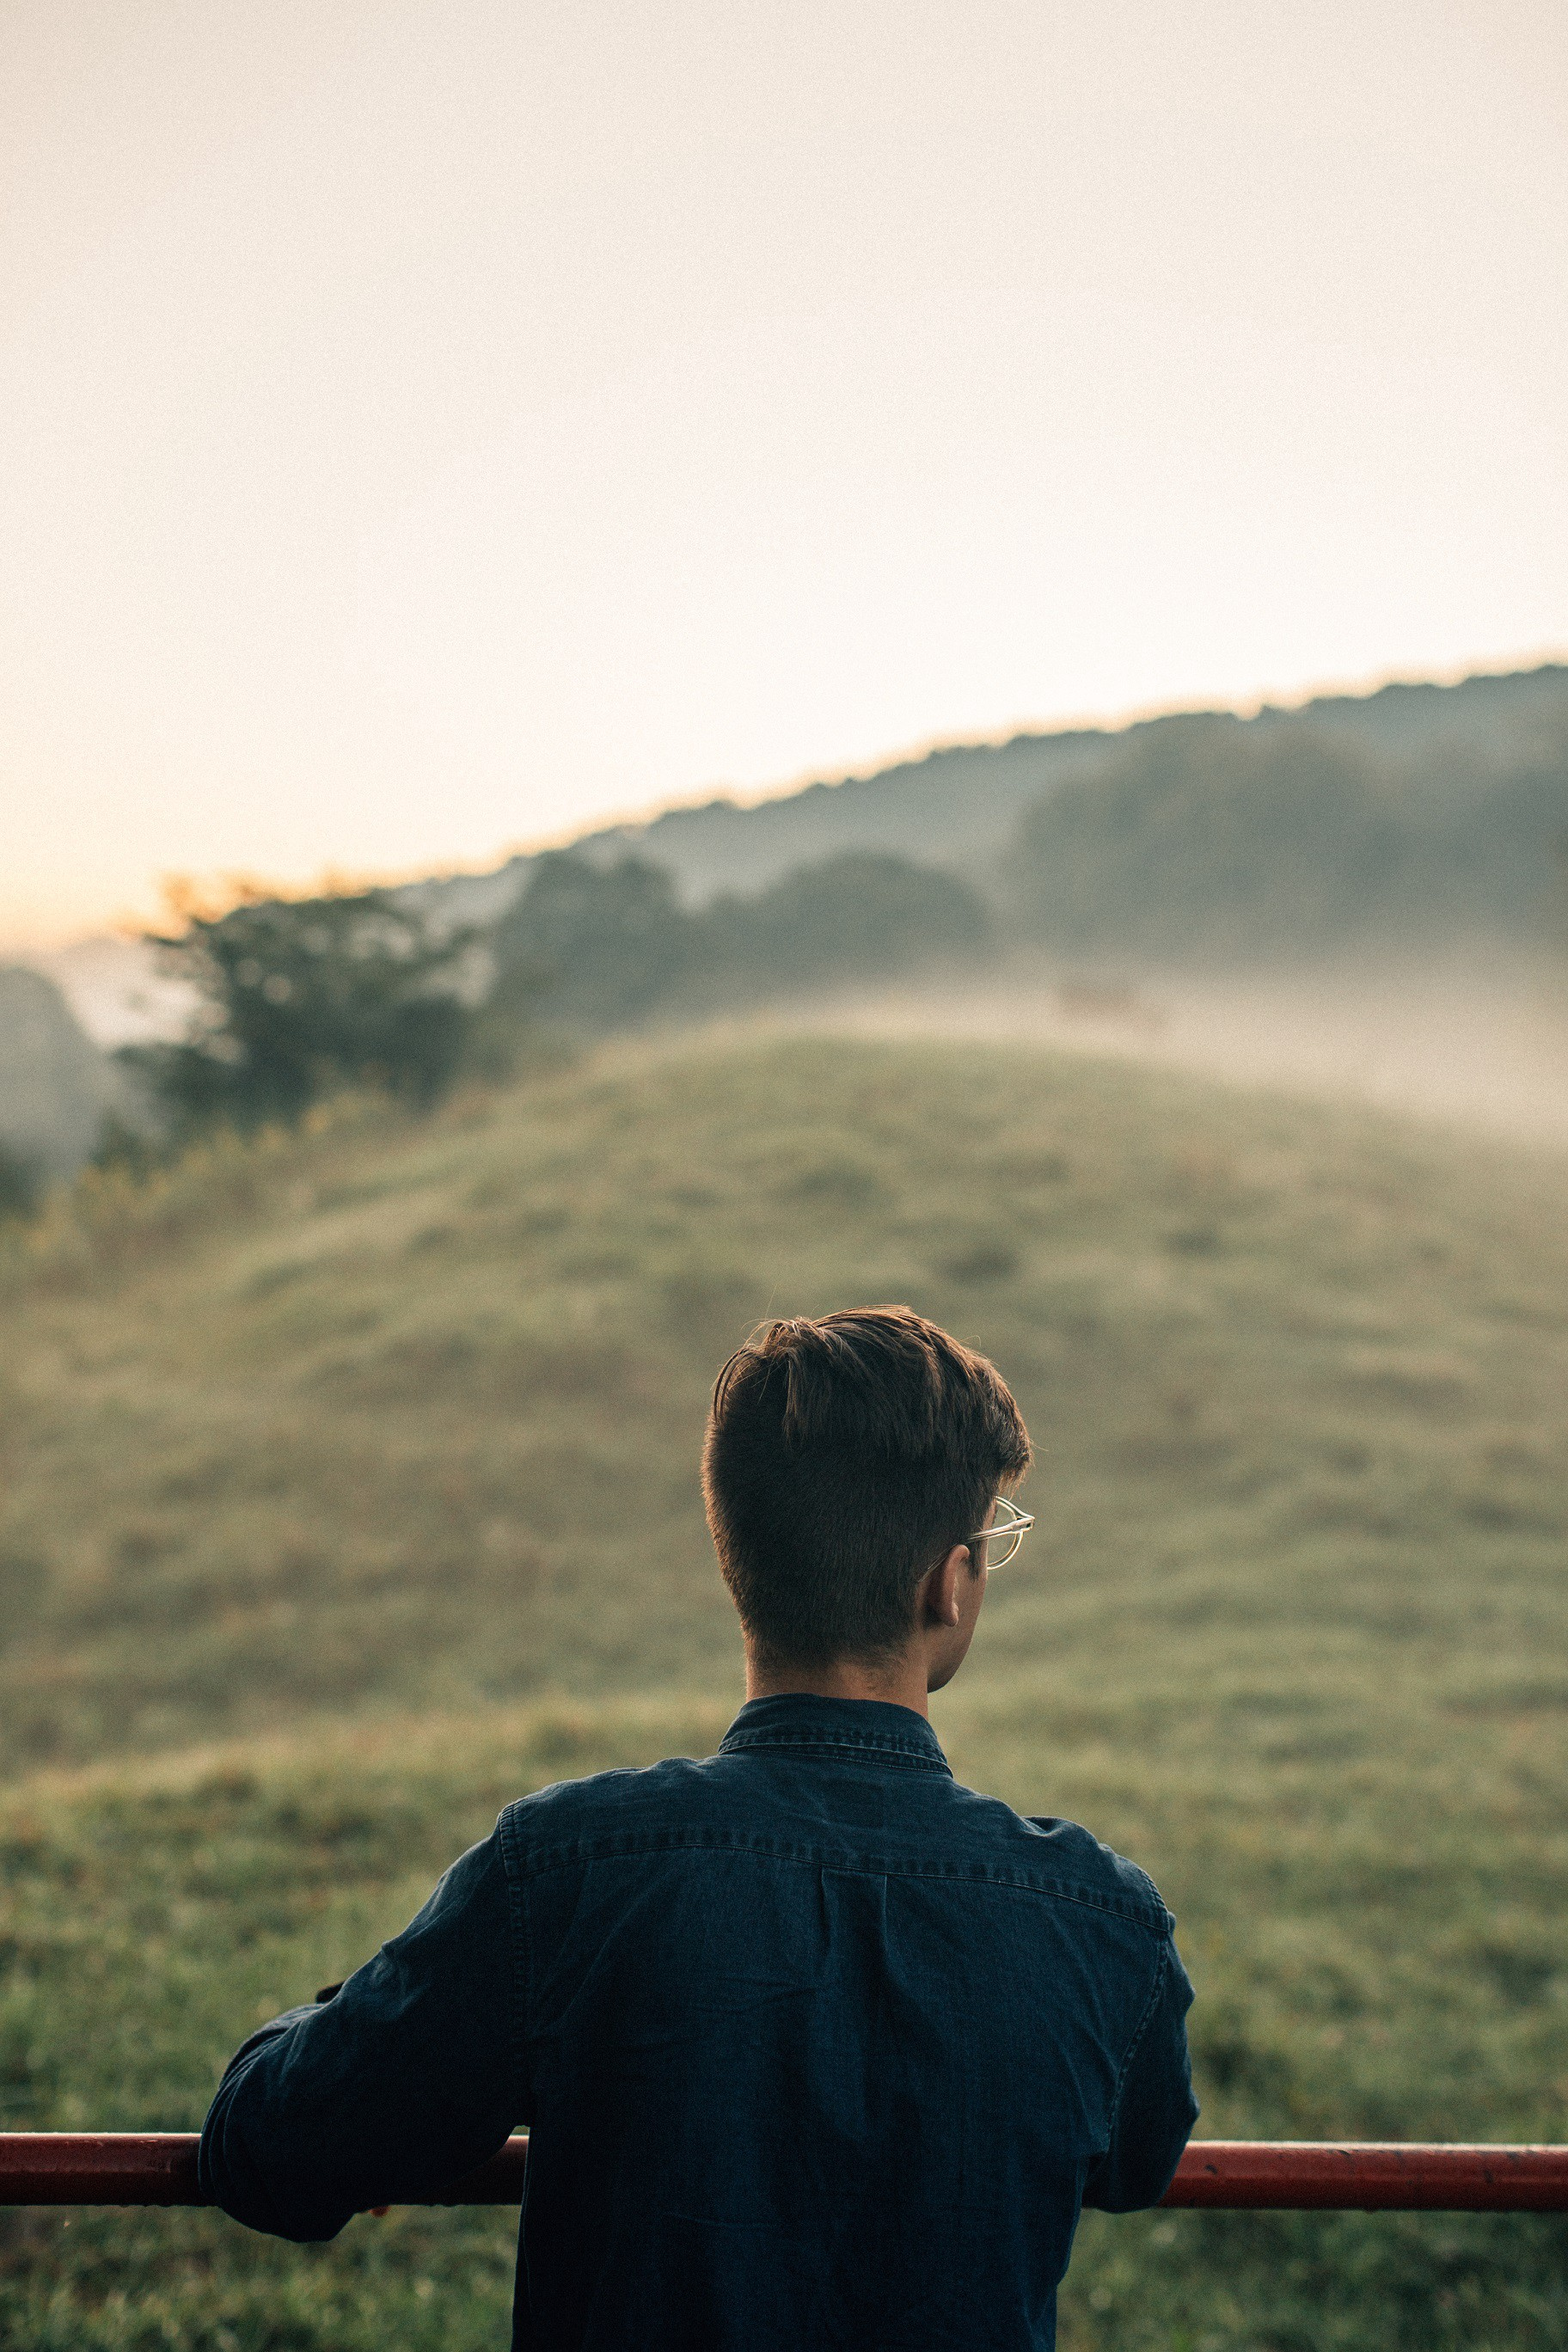 Man looking at a foggy hill.